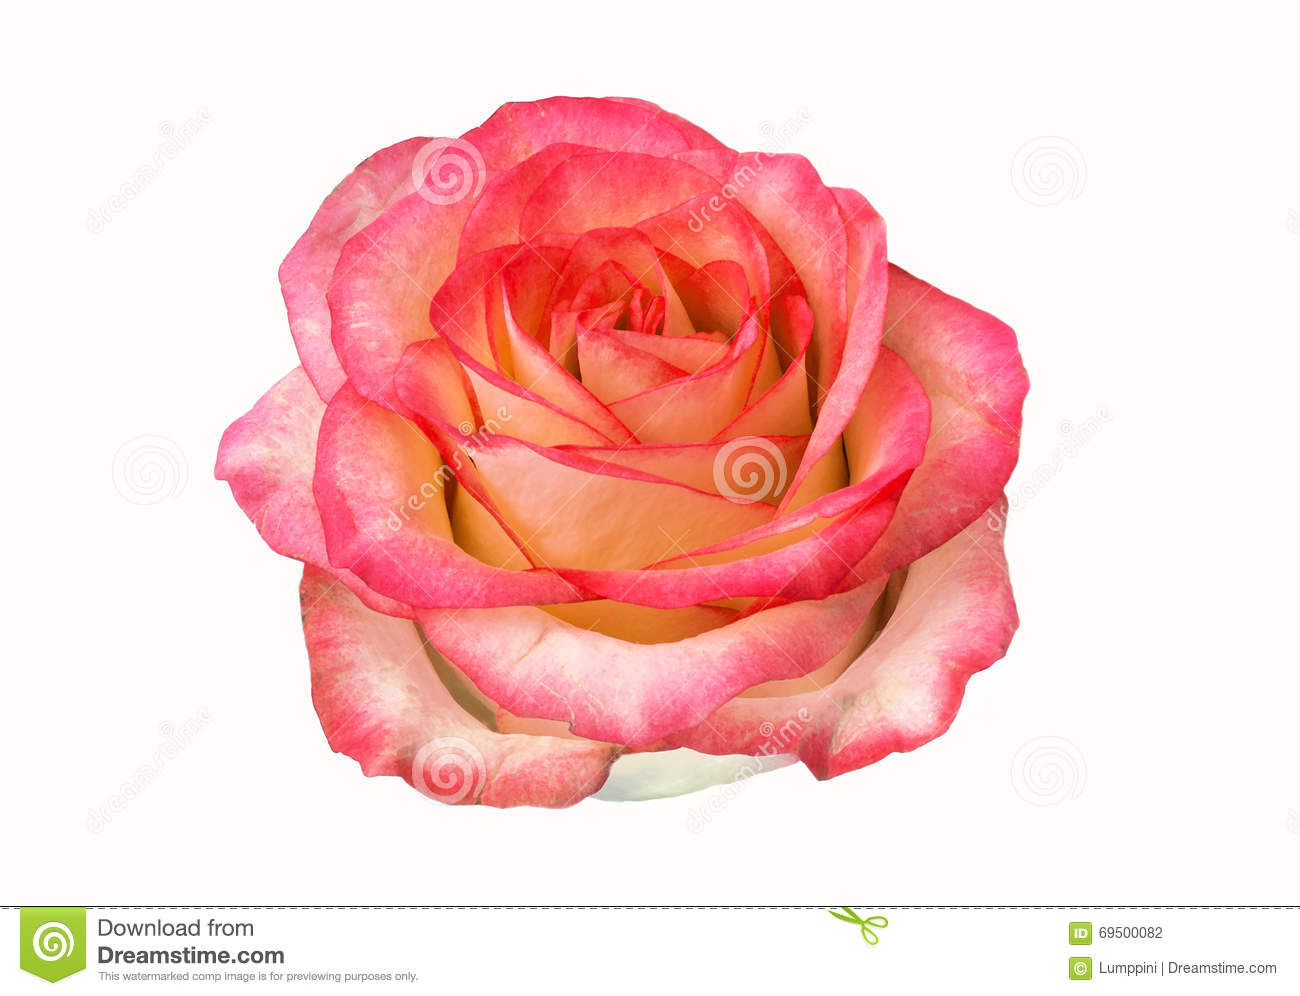 Rose bud isolated on white background. clipart, rose flower.